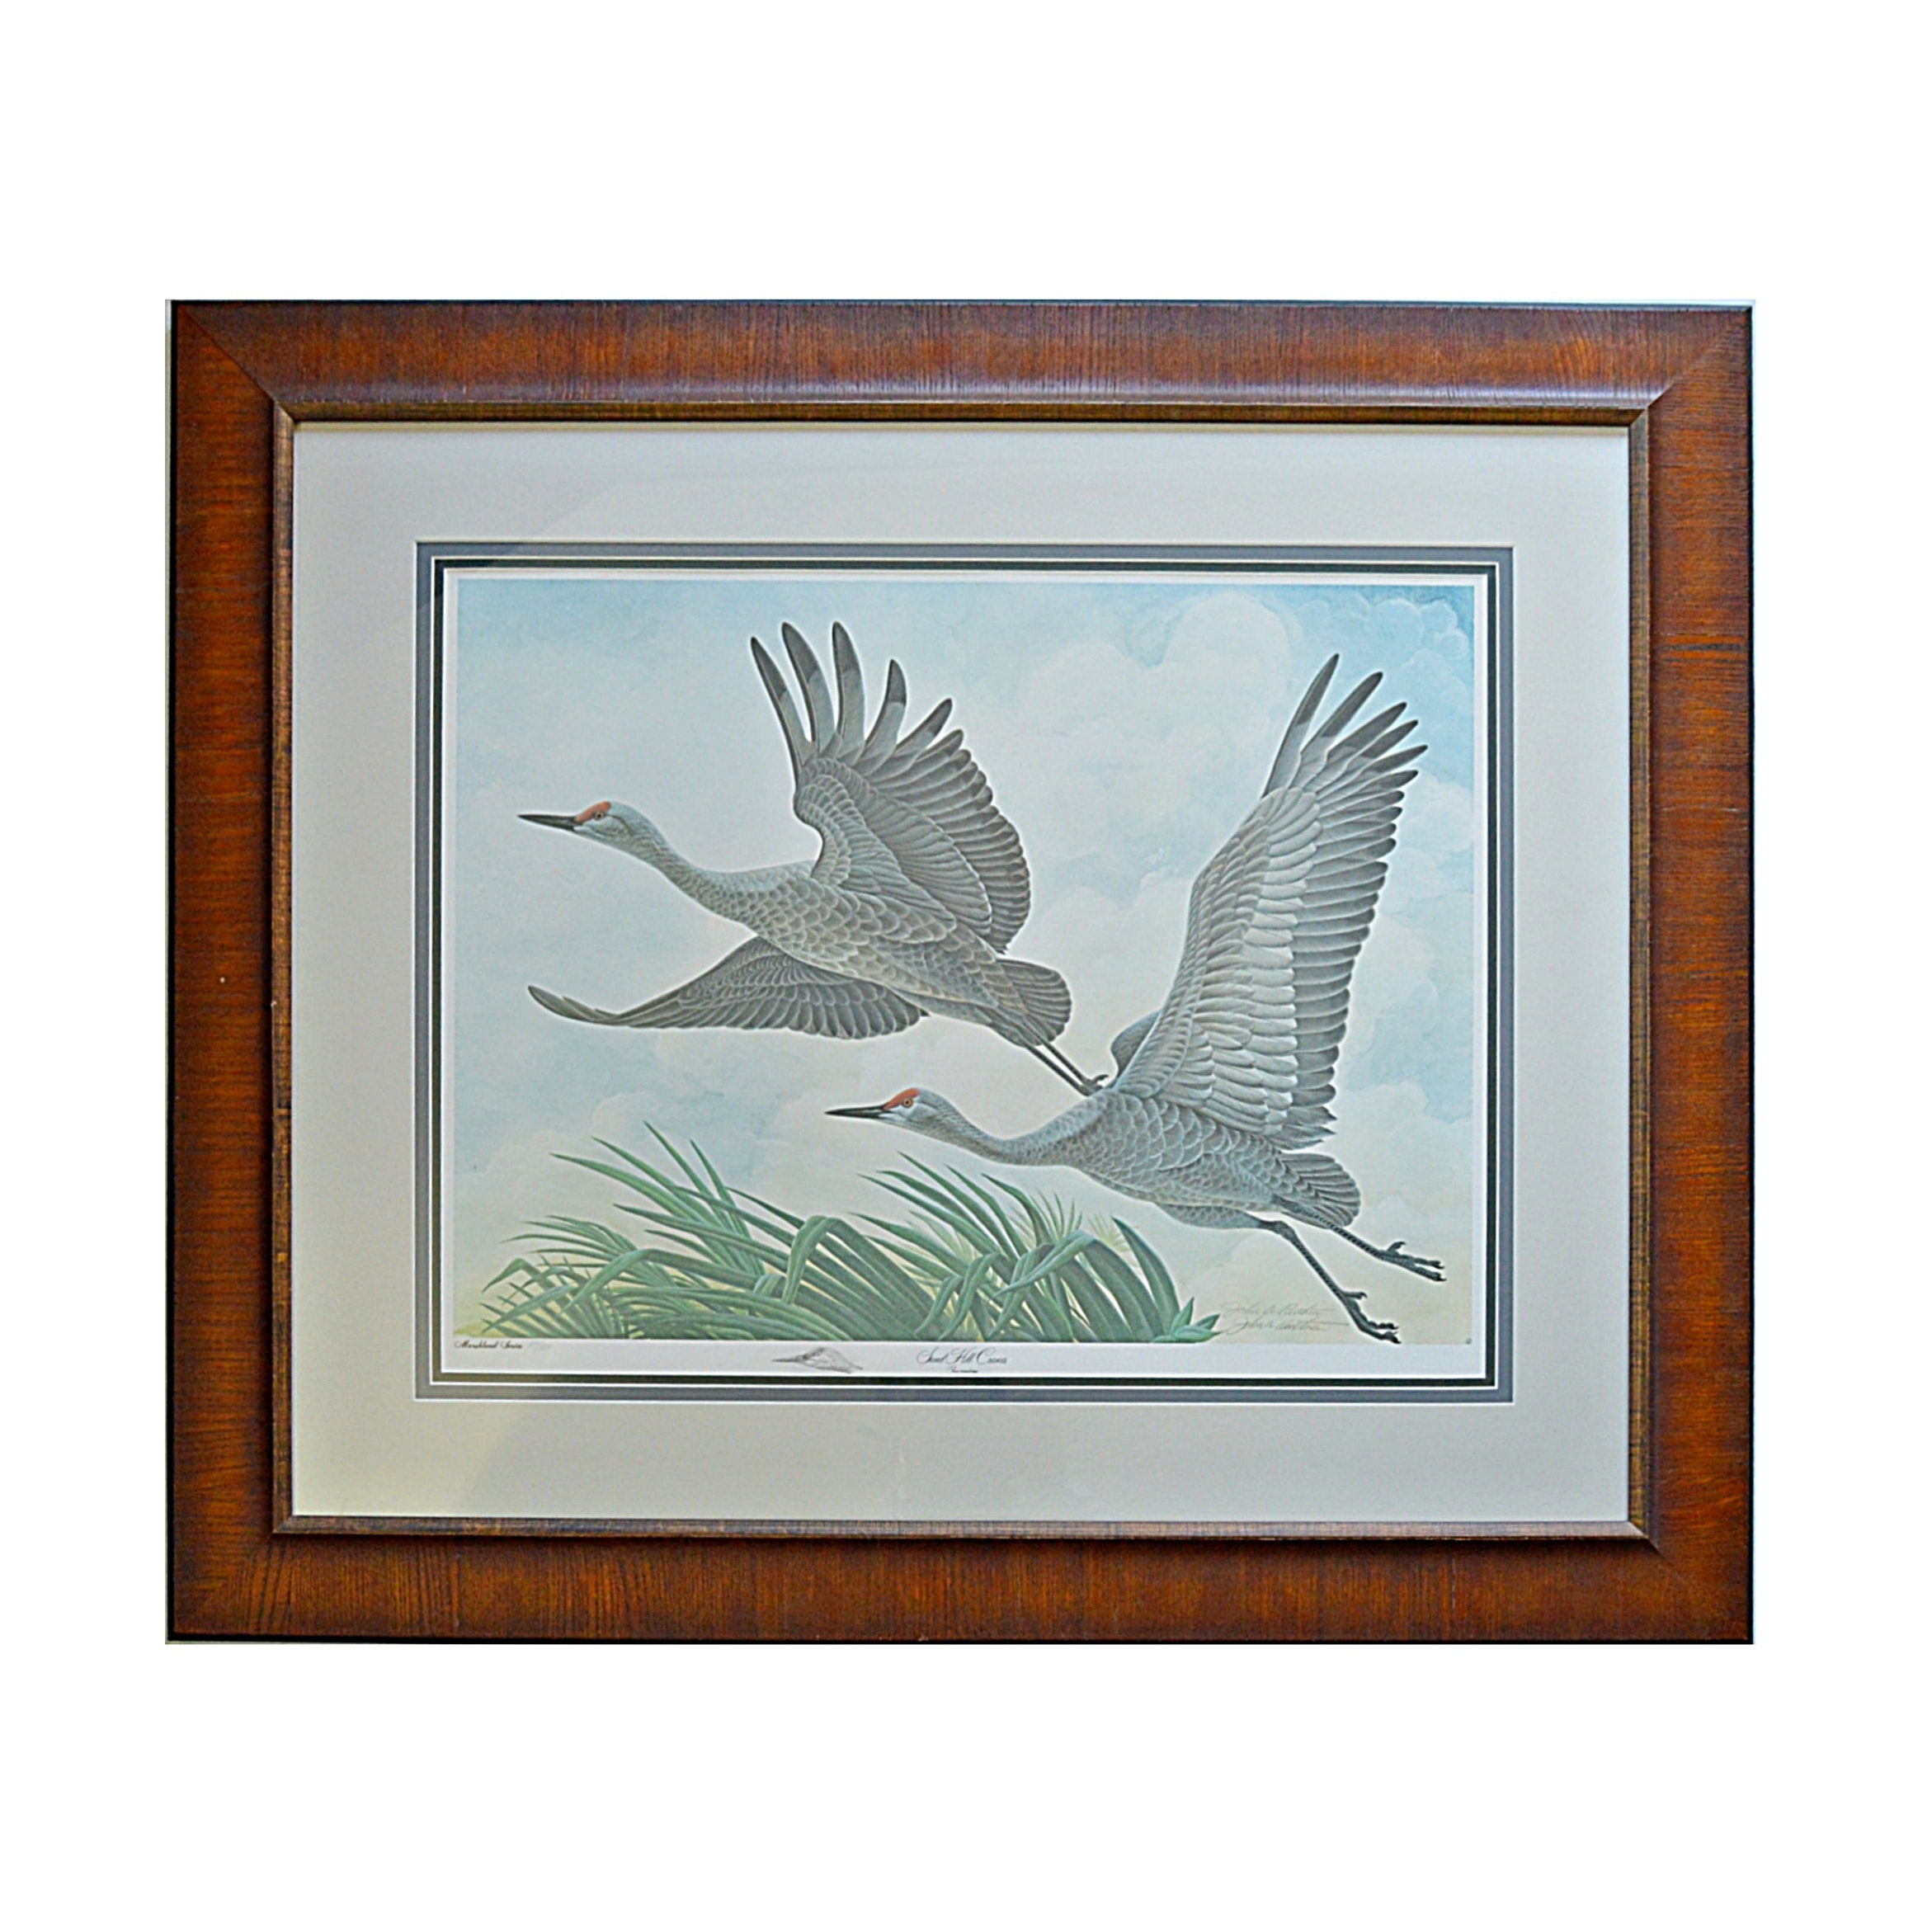 "John Ruthven Signed Limited Edition Offset Lithograph ""Sand Hill Cranes"""